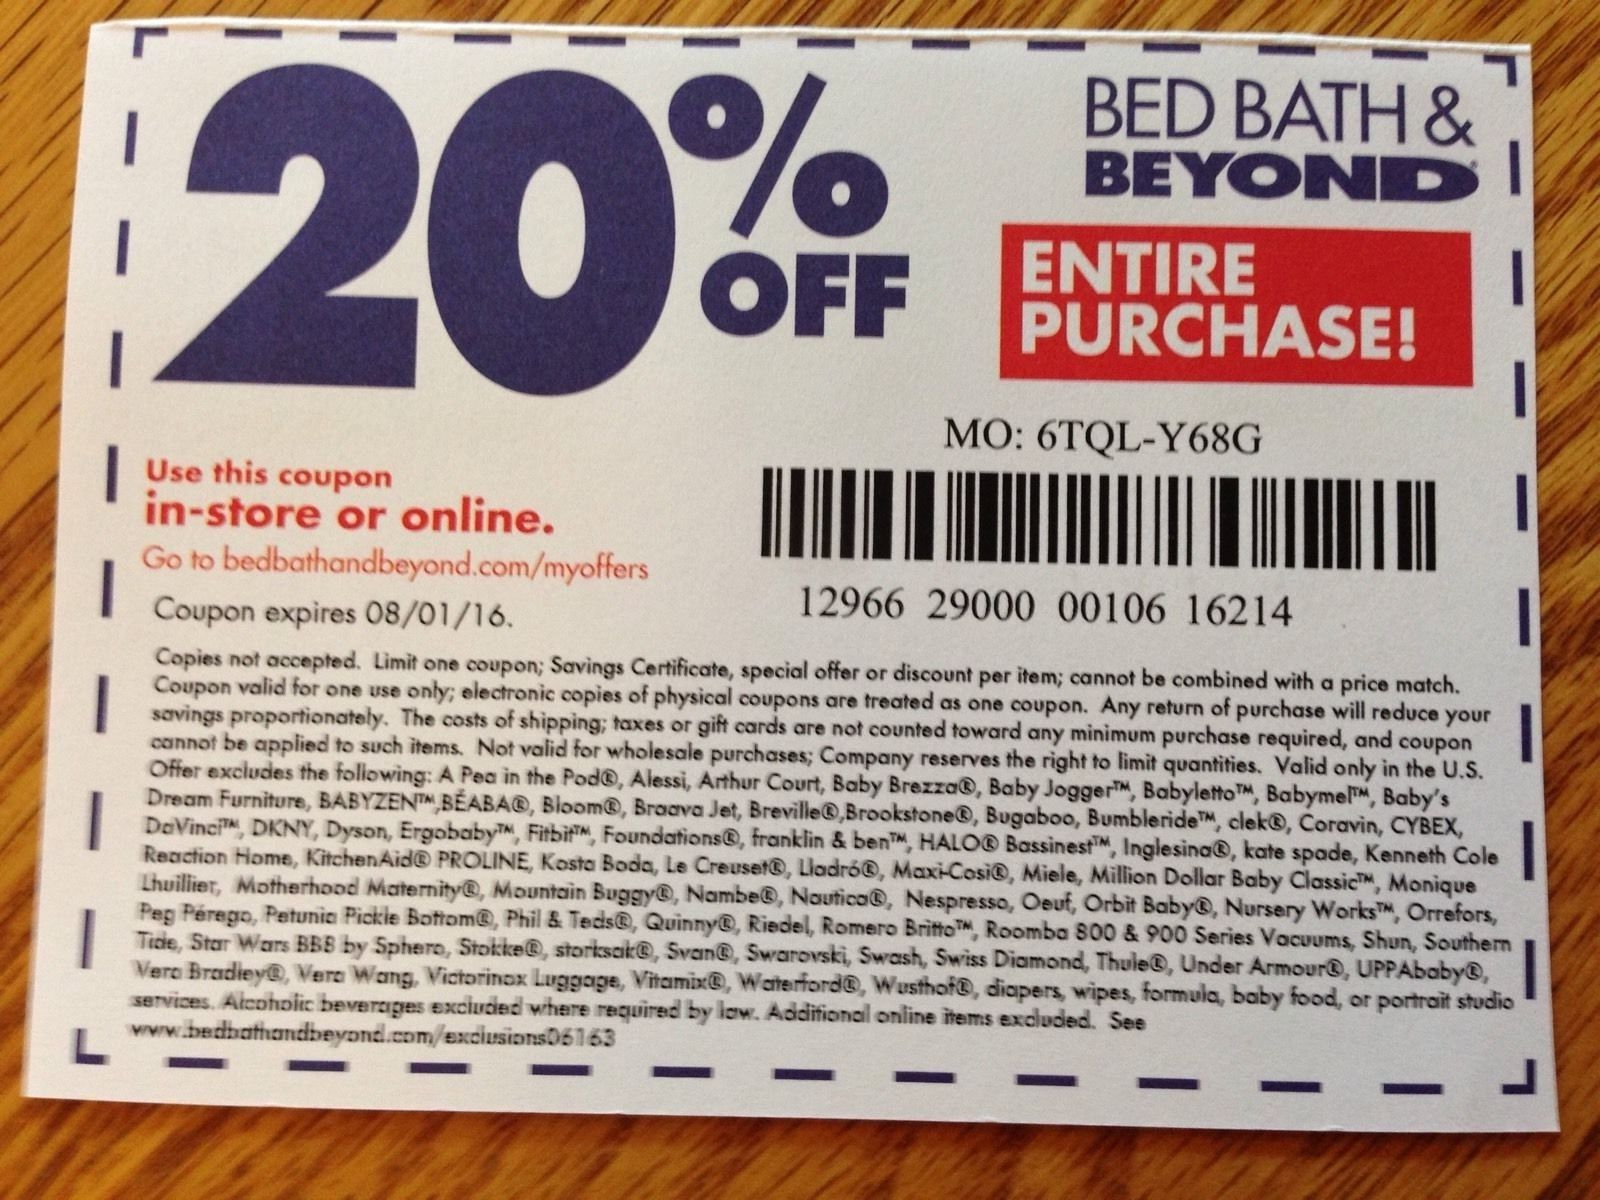 Bed Bath And Beyond Online Coupons 20 Off : Ninja Restaurant Nyc Coupons - Free Printable Bed Bath And Beyond 20 Off Coupon